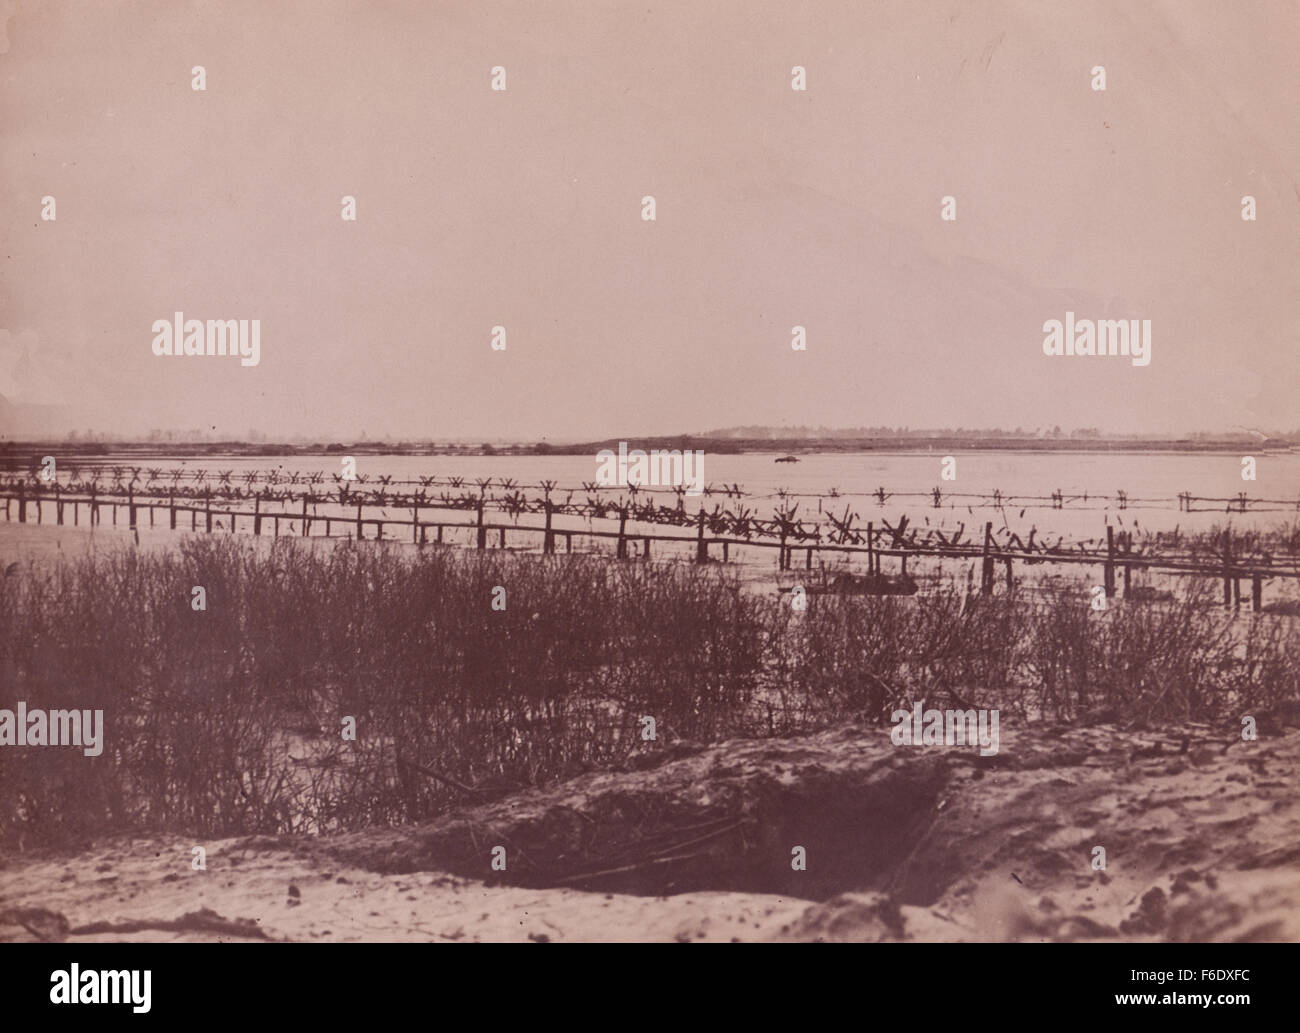 WW2 Normandy sea defences of barbed wire and sea mines. Stock Photo